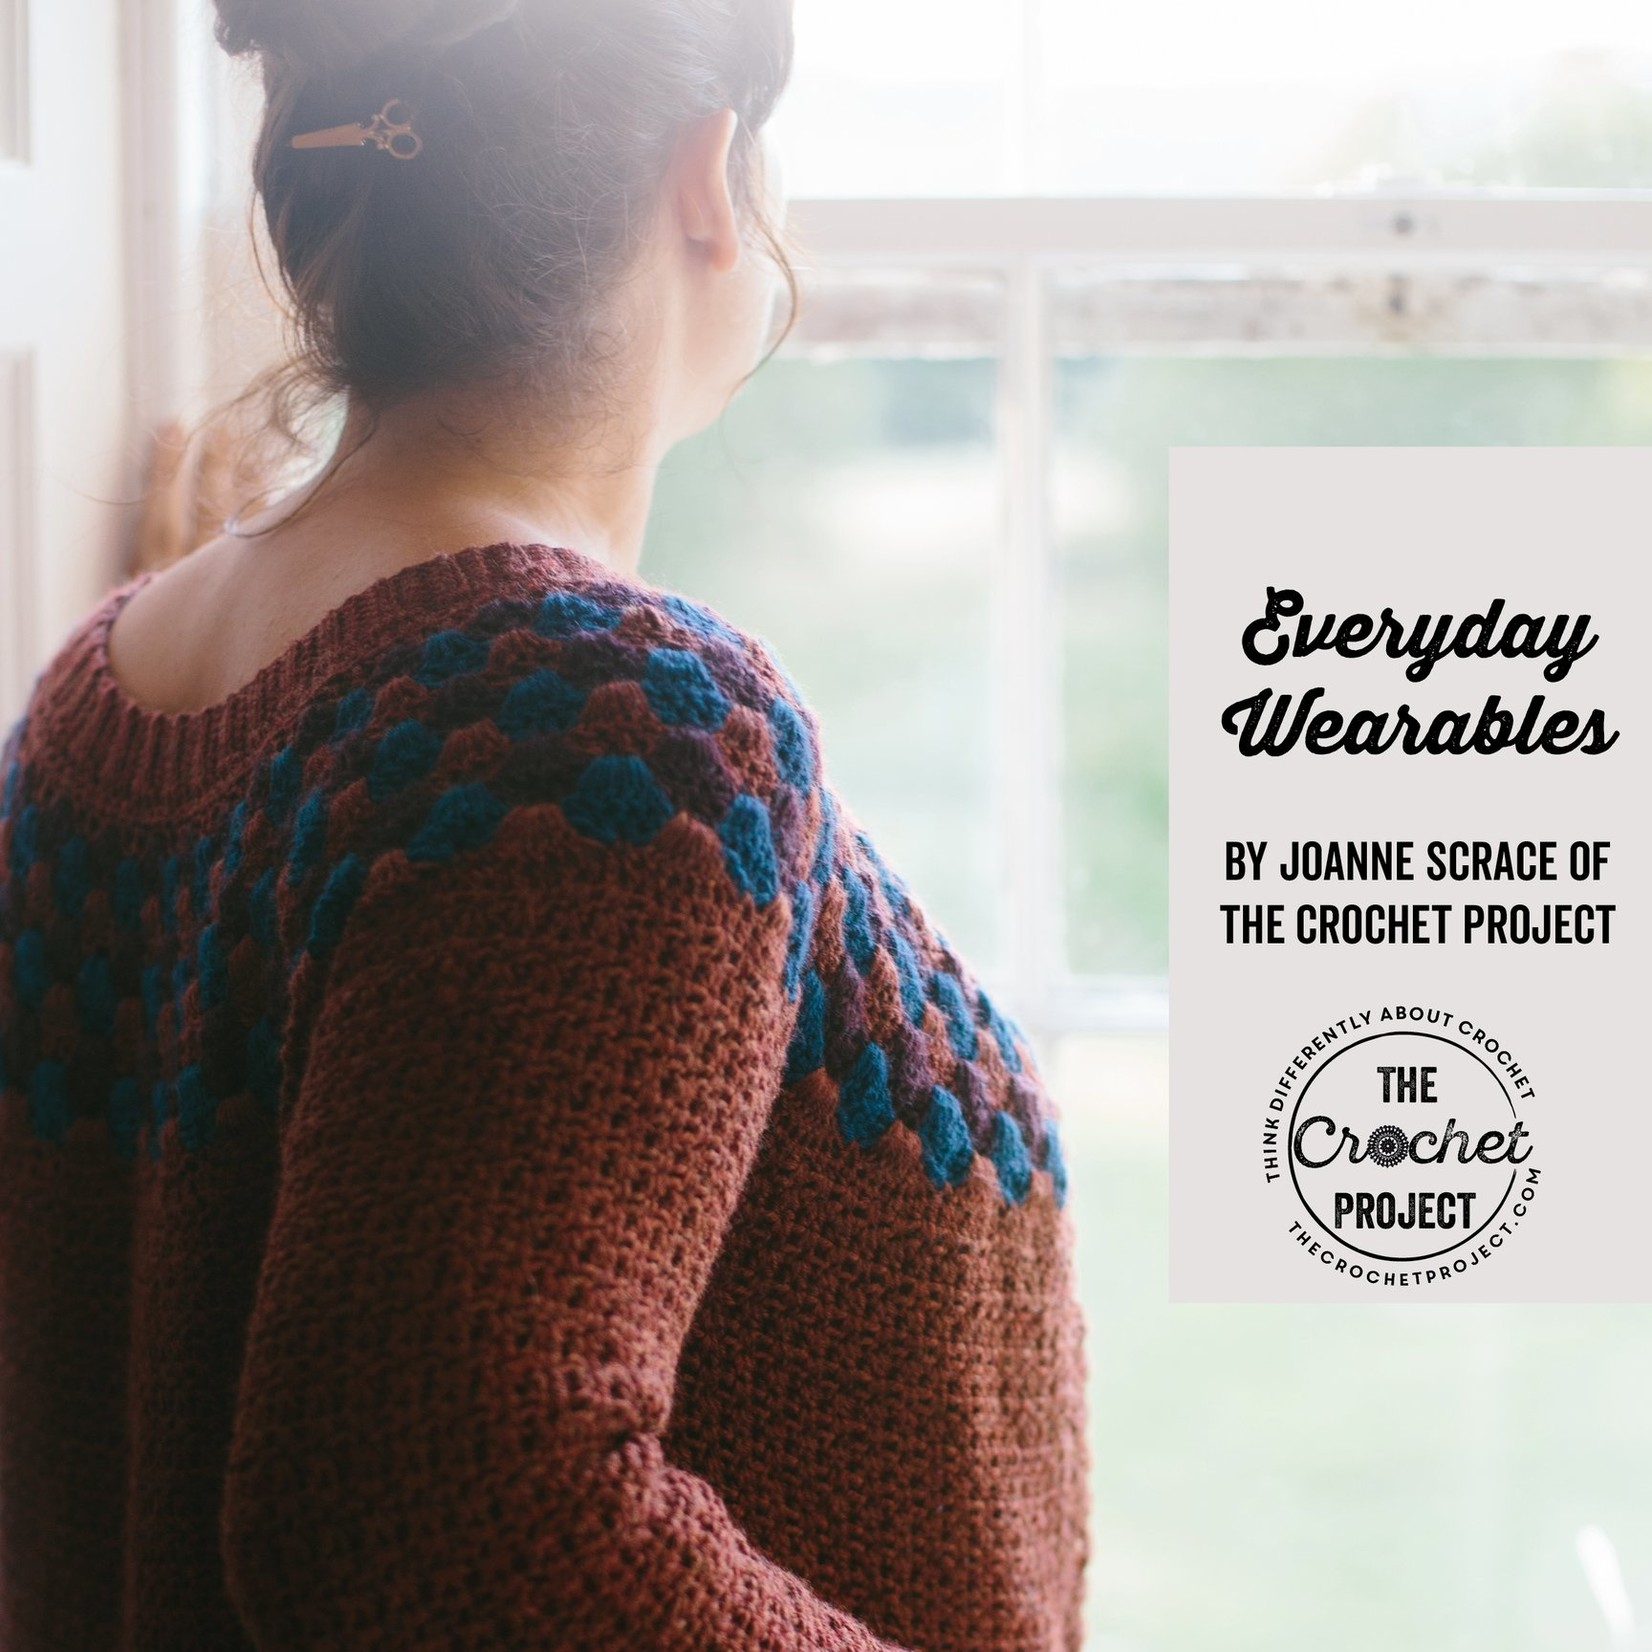 The Crochet Project Everyday Wearables - The Crochet Project